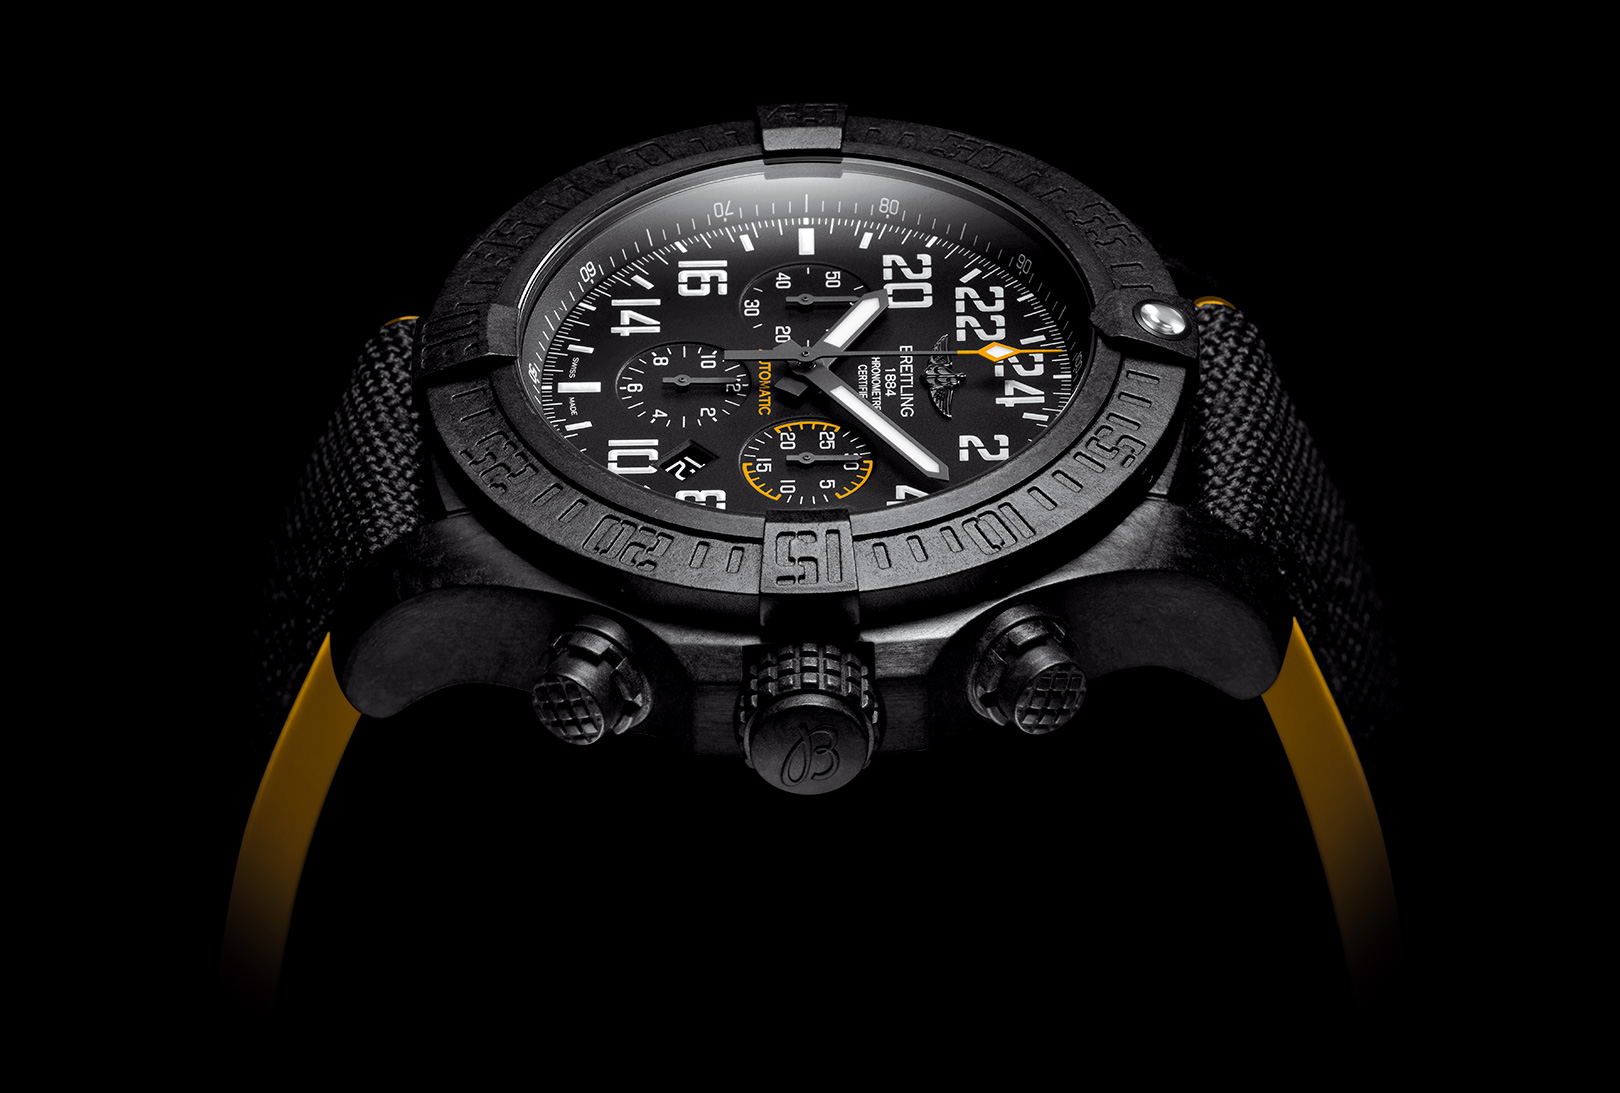 Breitling Super Avenger II Military – tactical watch